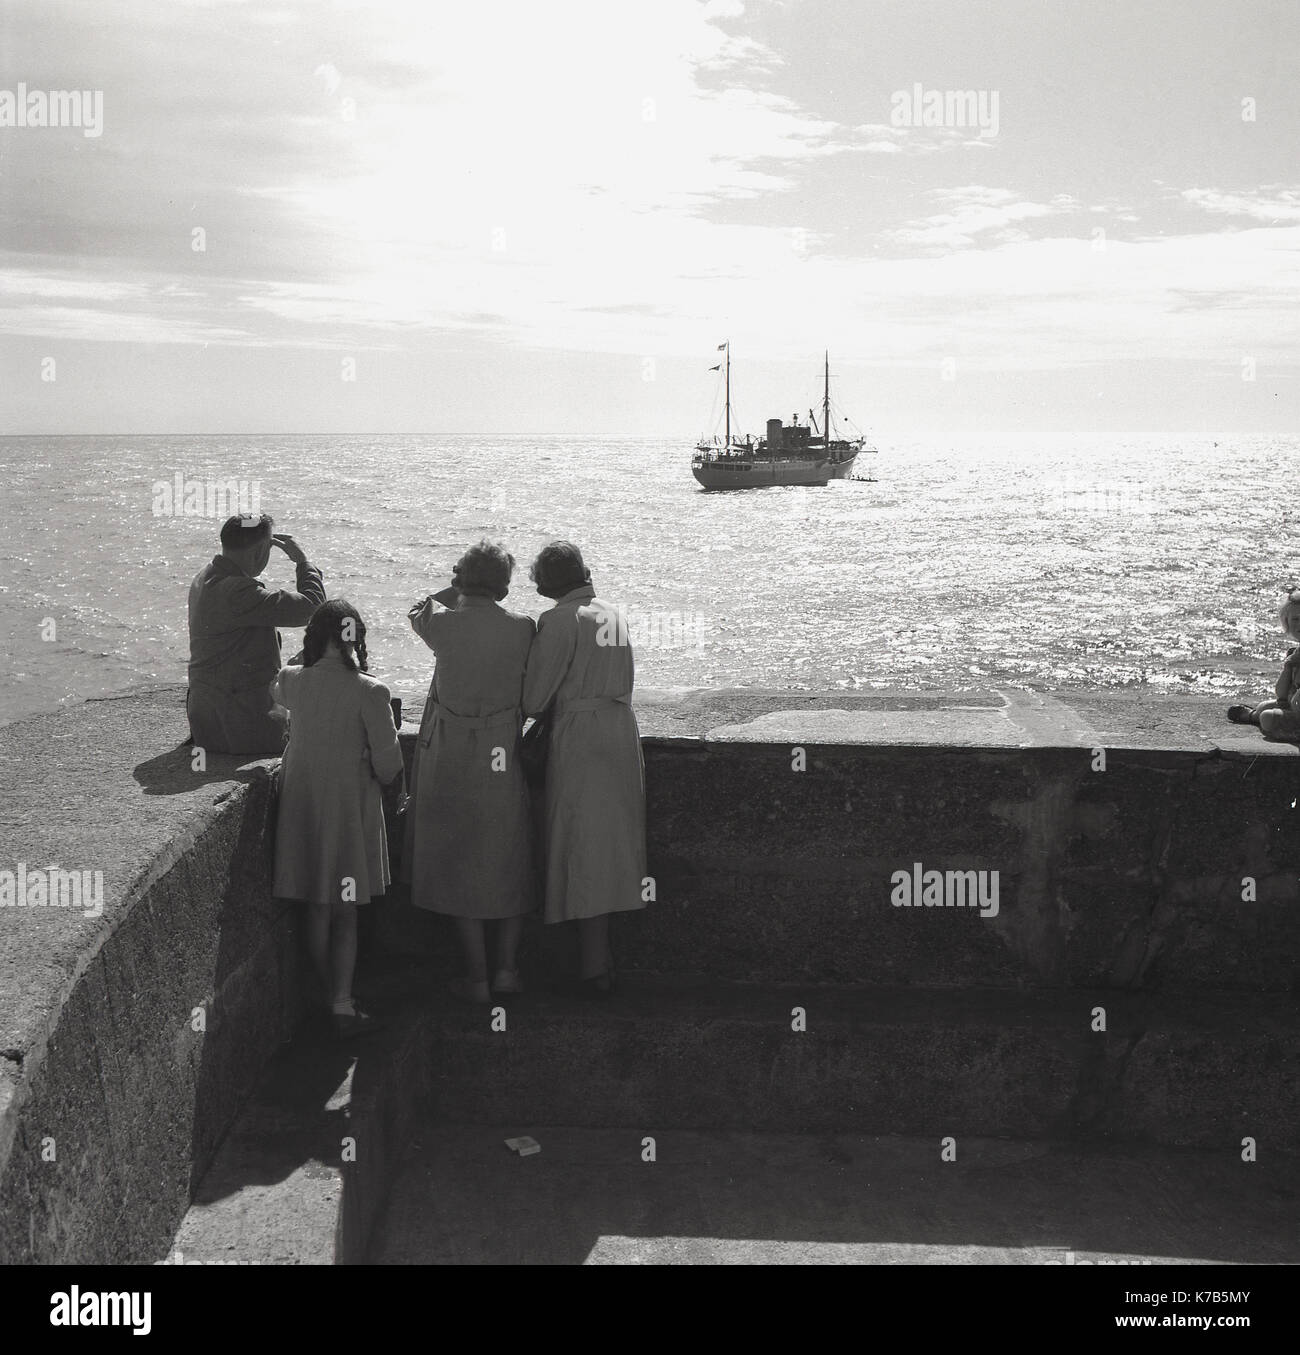 1950s, historical, man, women and child stand at jetty looking out at two boats in the distance. - Stock Image